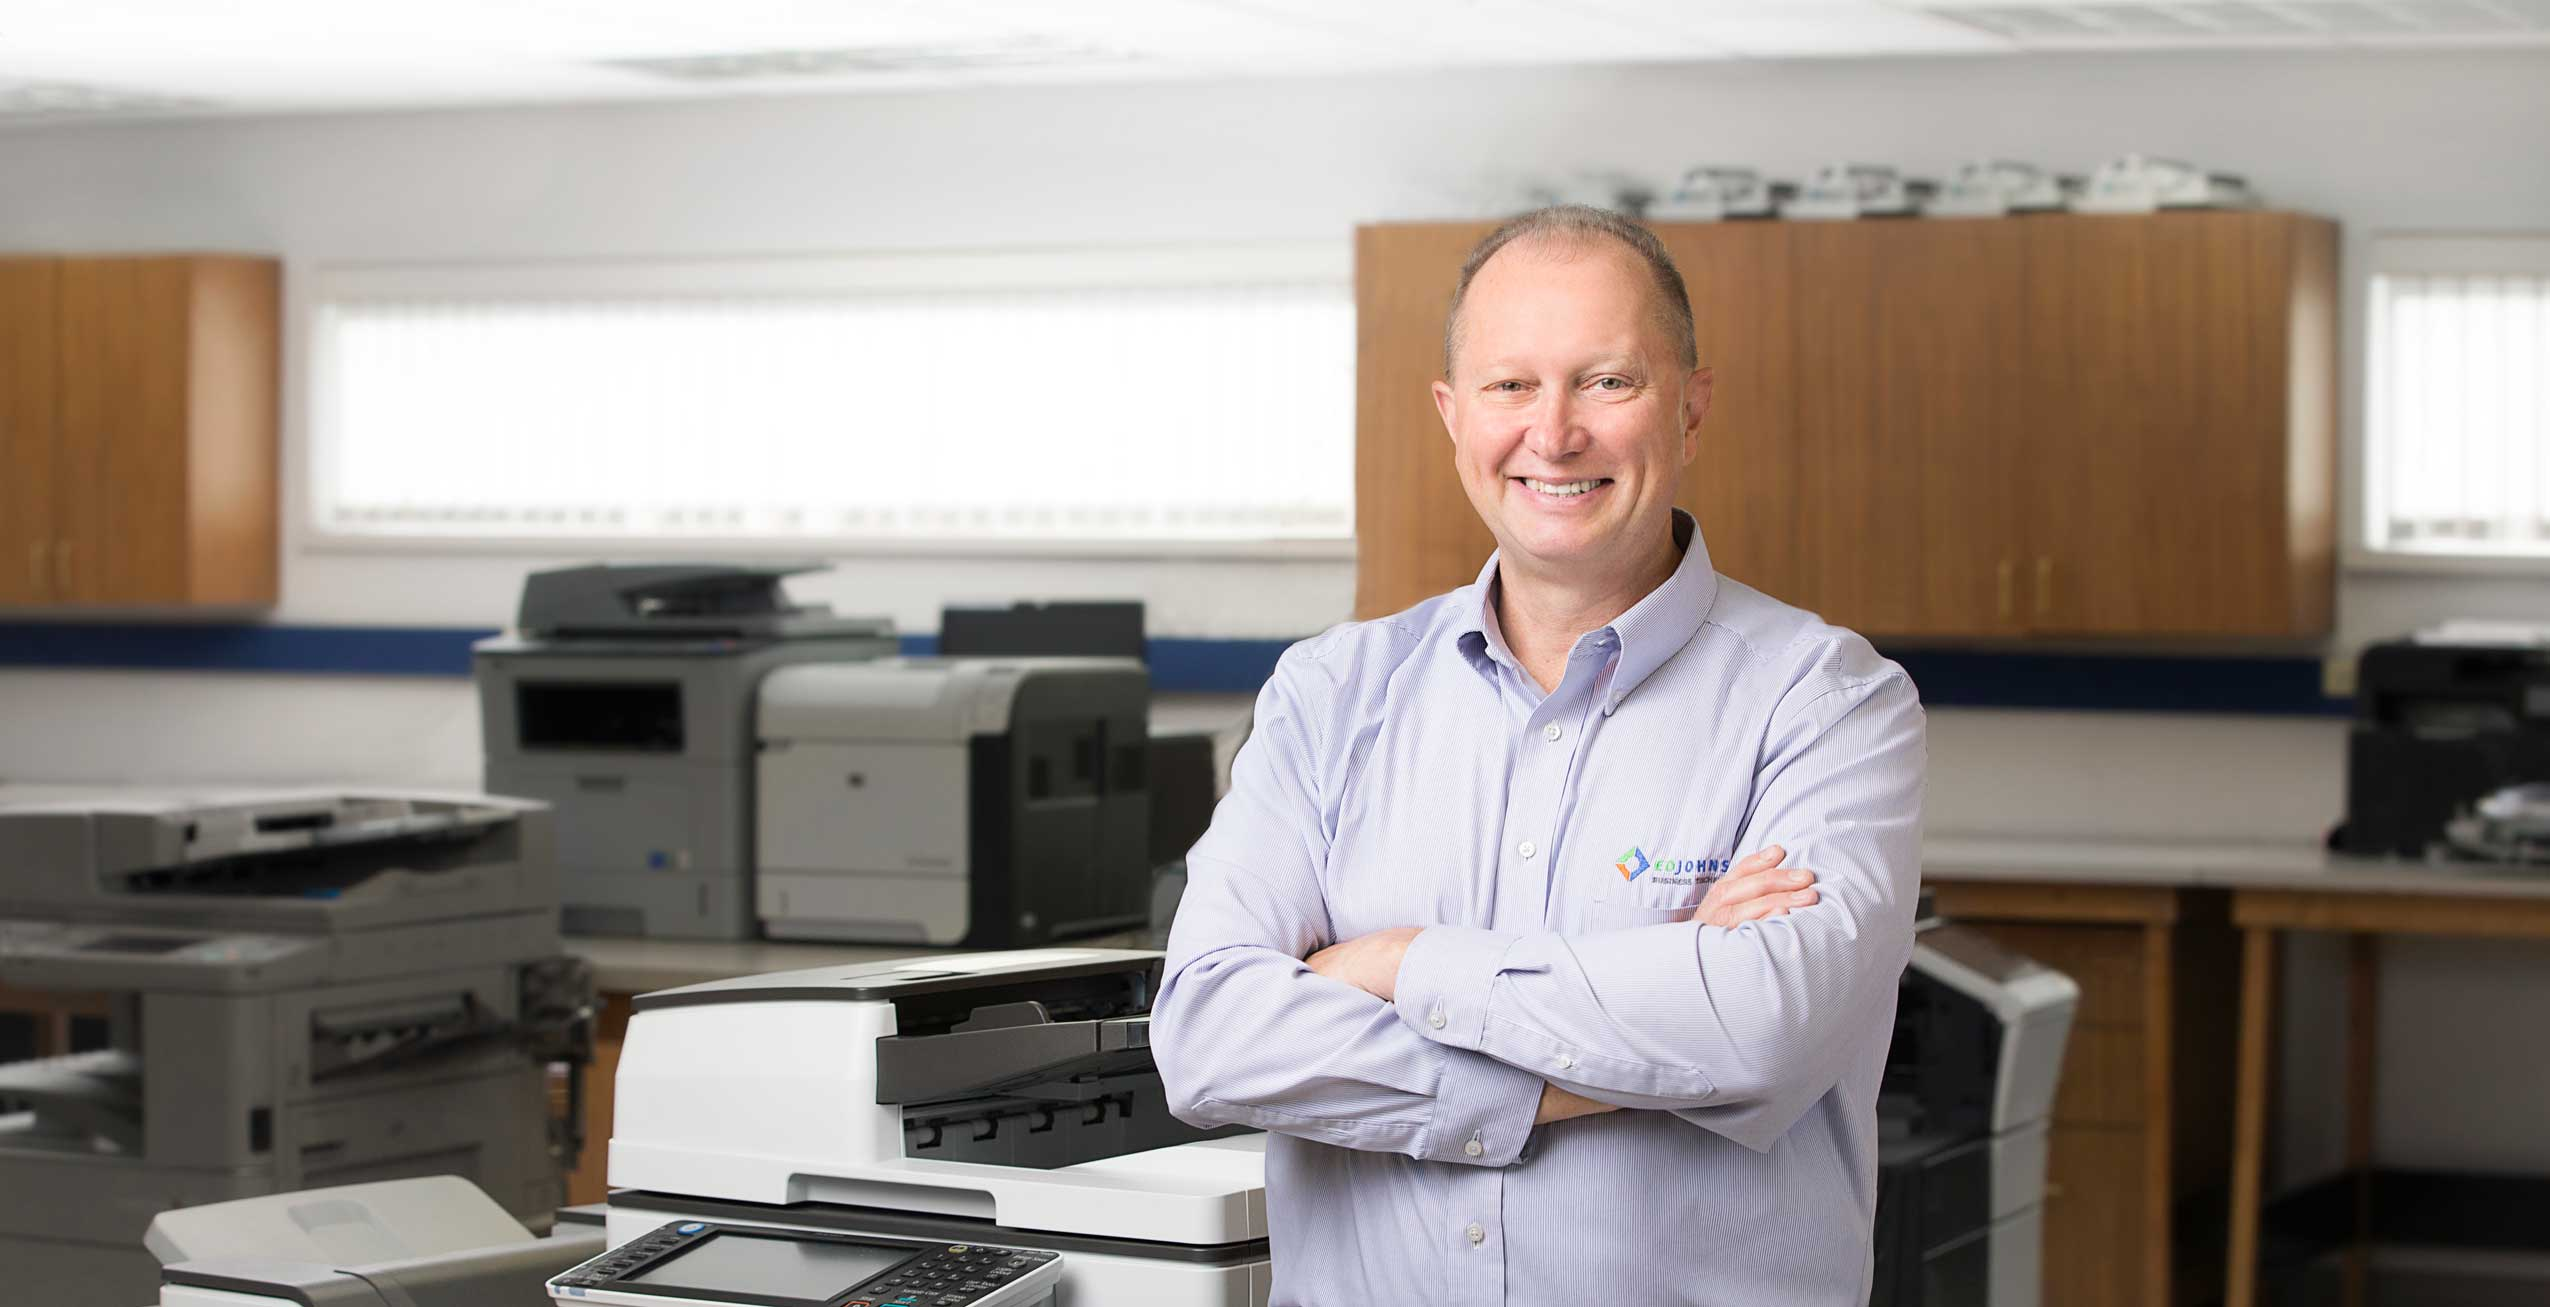 eo_johnson_employee_smiling_with_arms_crossed_next_to_copier